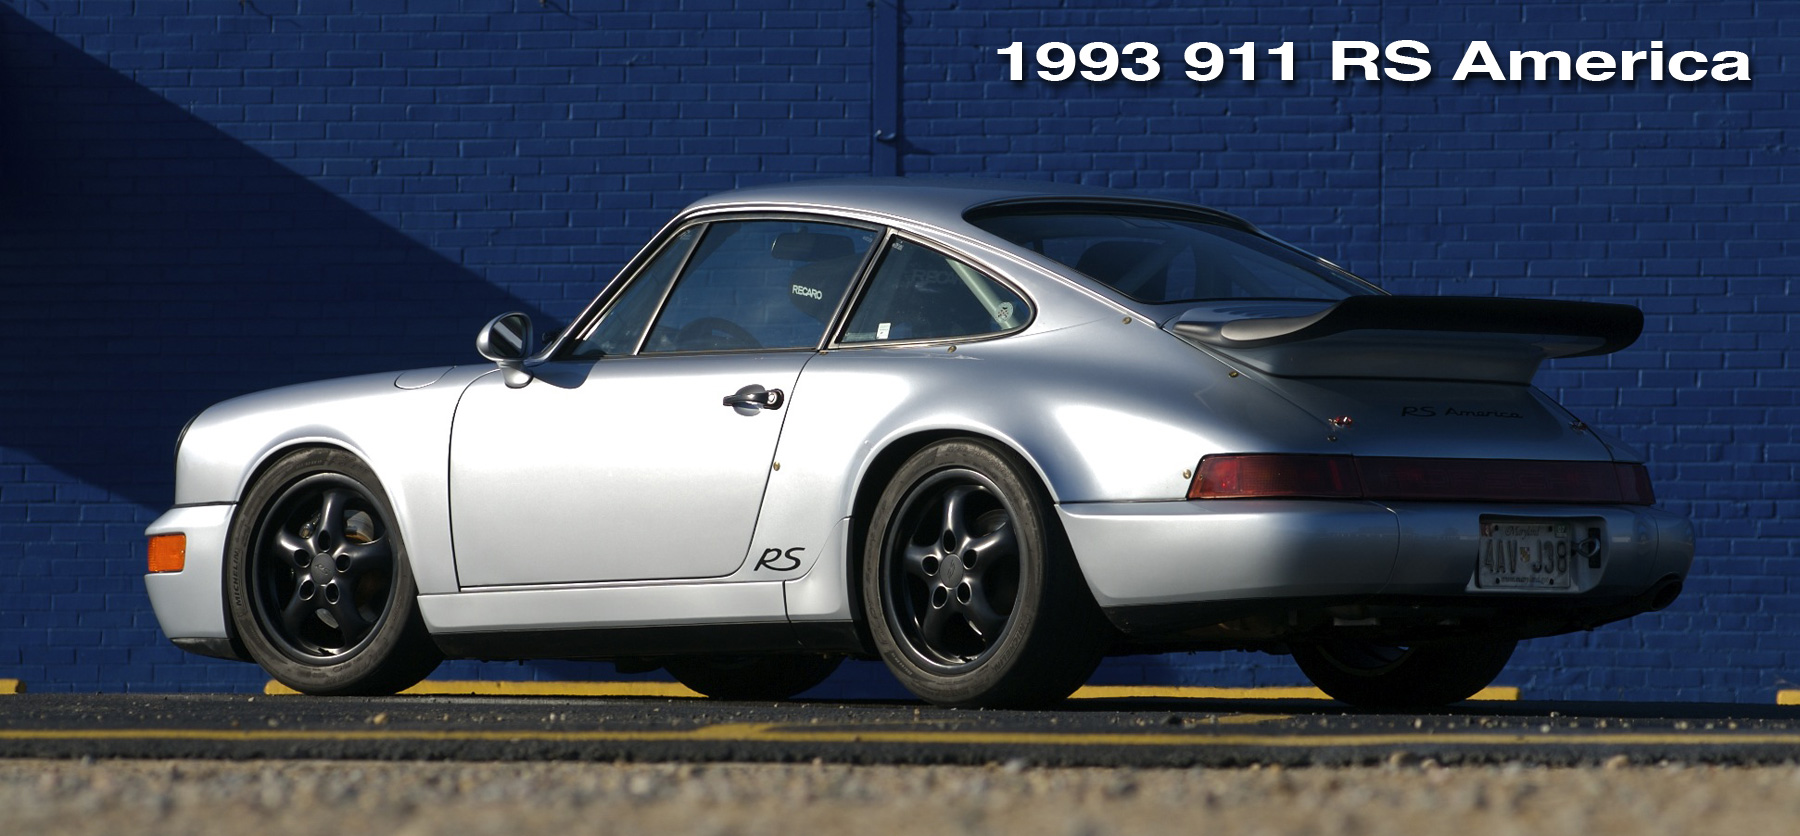 964 RS America header image with the silver car shown in front of a blue wall.